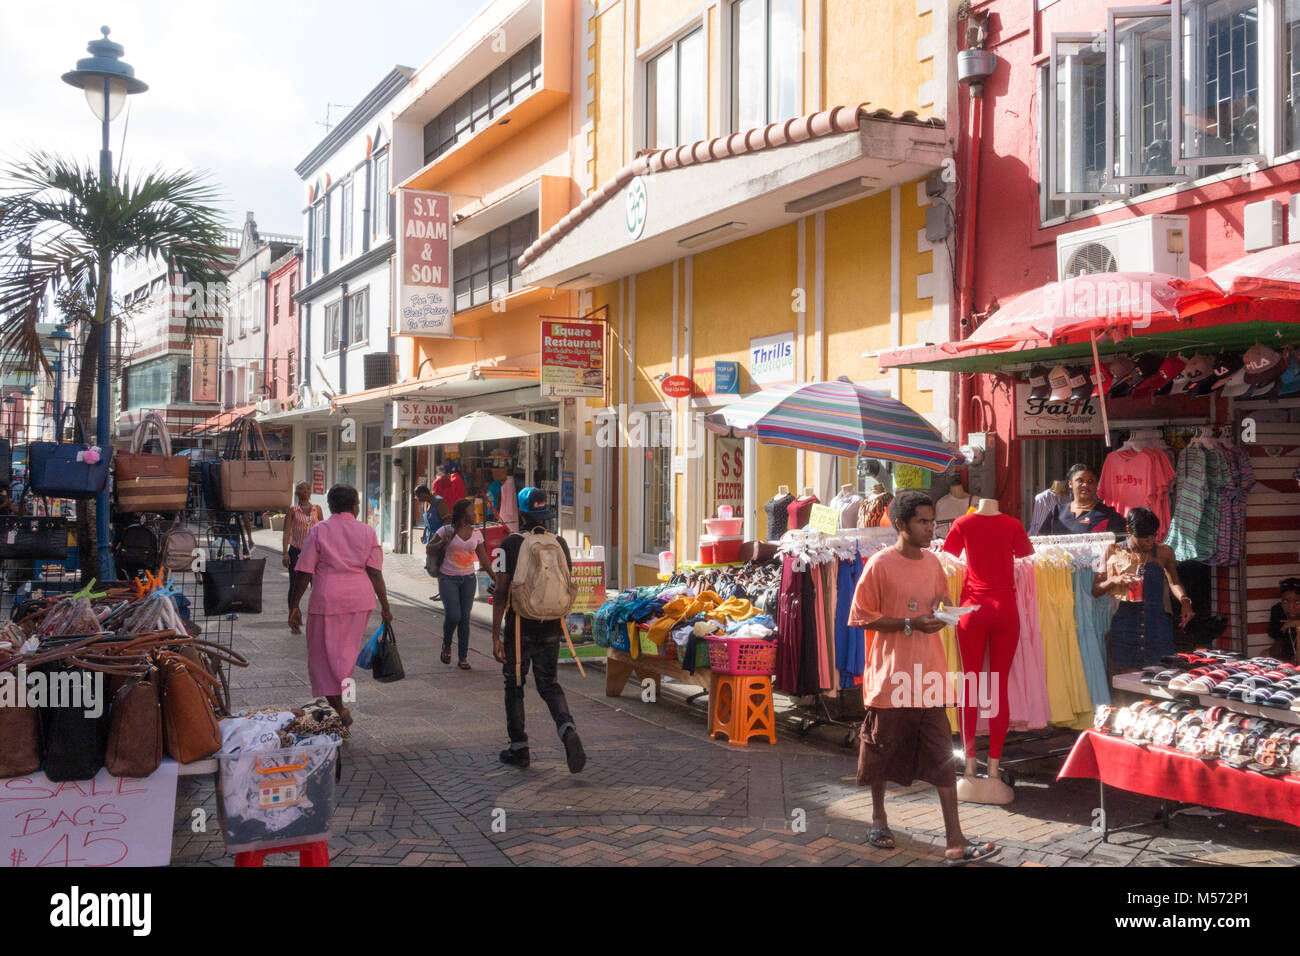 Market stalls in a street in Bridgetown, Barbados - Stock Image